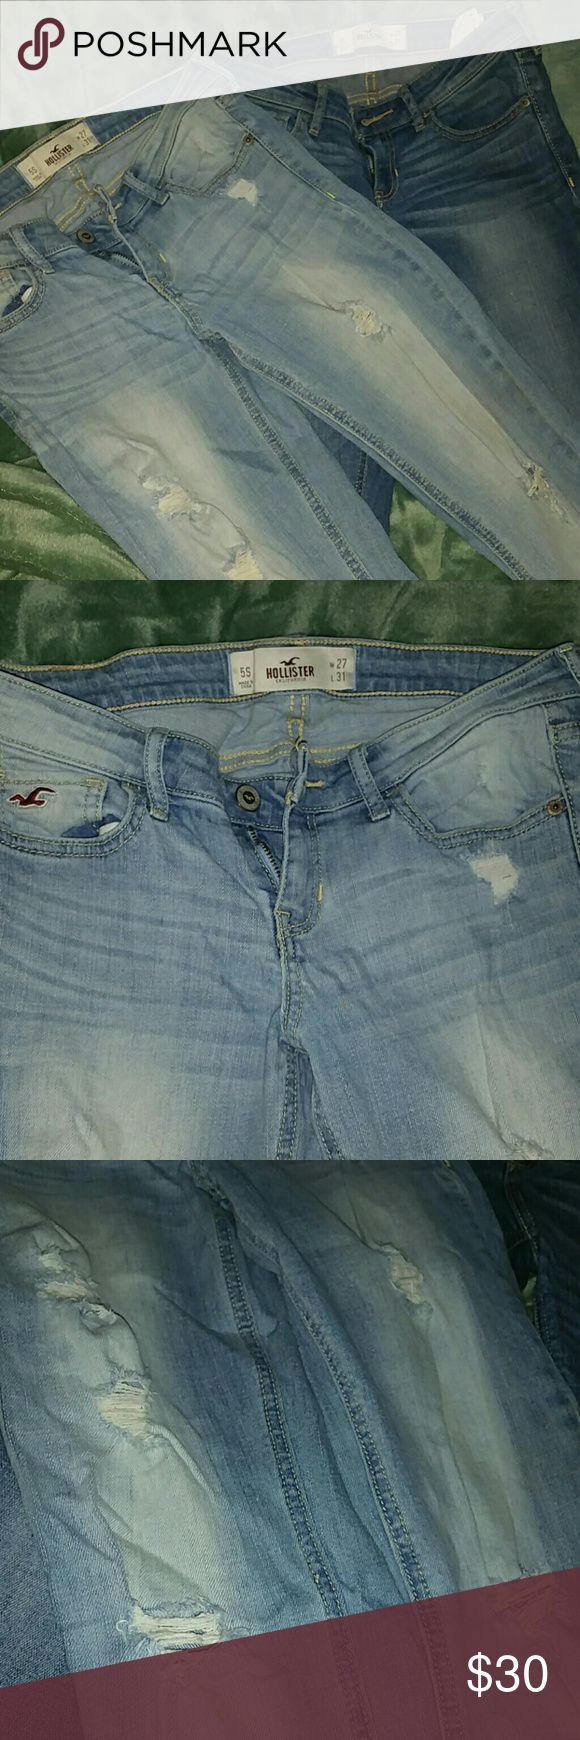 Hot deal!!! 2 Hollister boot cut jeans! Great quality Hollister boot cut jeans. First pair is light blue with rips & the second pair is medium blue with a light fading to it. Size 5s (short) two jeans for the price of one! Hollister Jeans Boot Cut